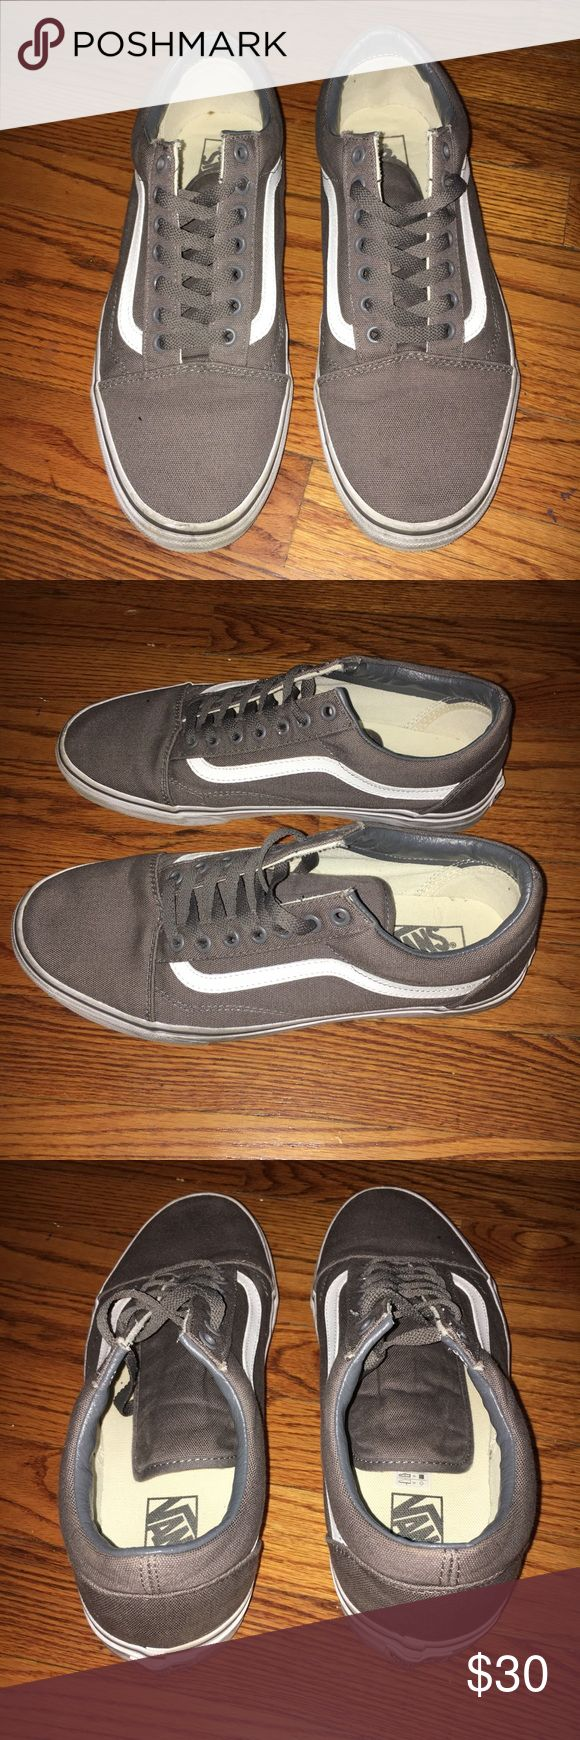 Grey Old Skool Vans Size: 10 Condition: 8/10  All items will shipped 1-2 days after purchase Ask me anything if curious about something All sales are final, no refunds Shipping varies depending on buyer's location Vans Shoes Sneakers